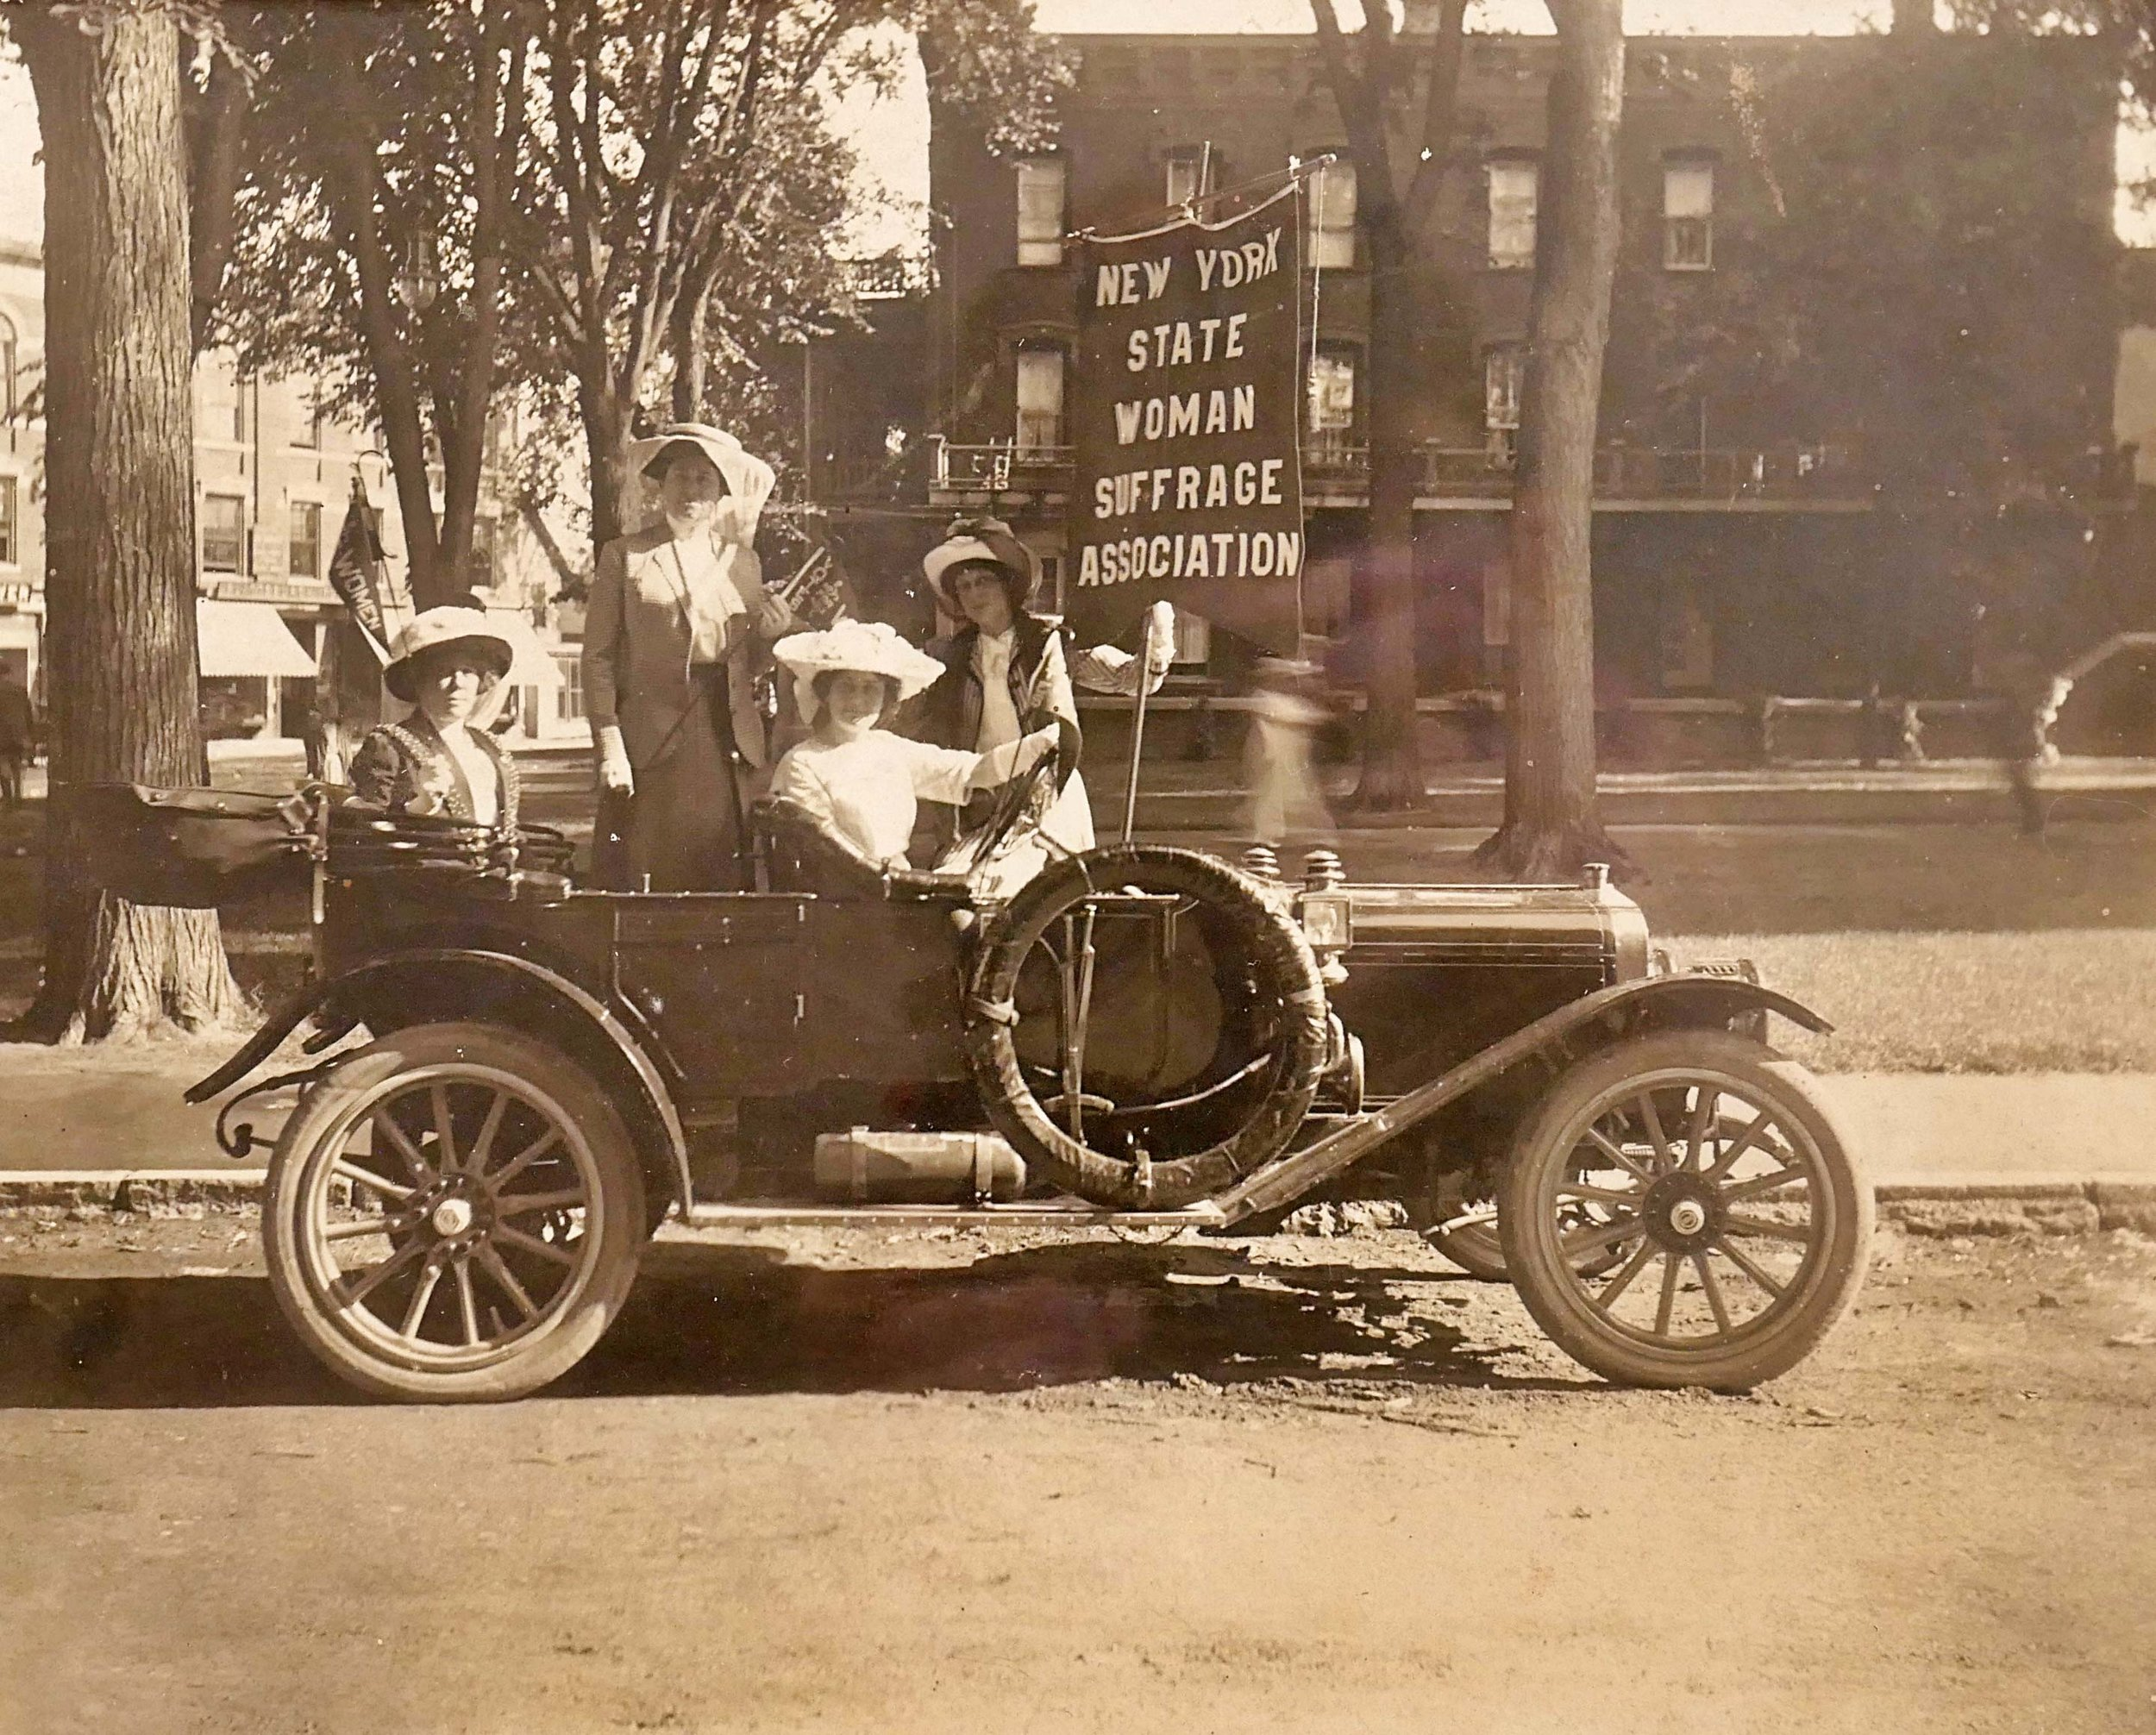 New York State Suffrage Association In Car